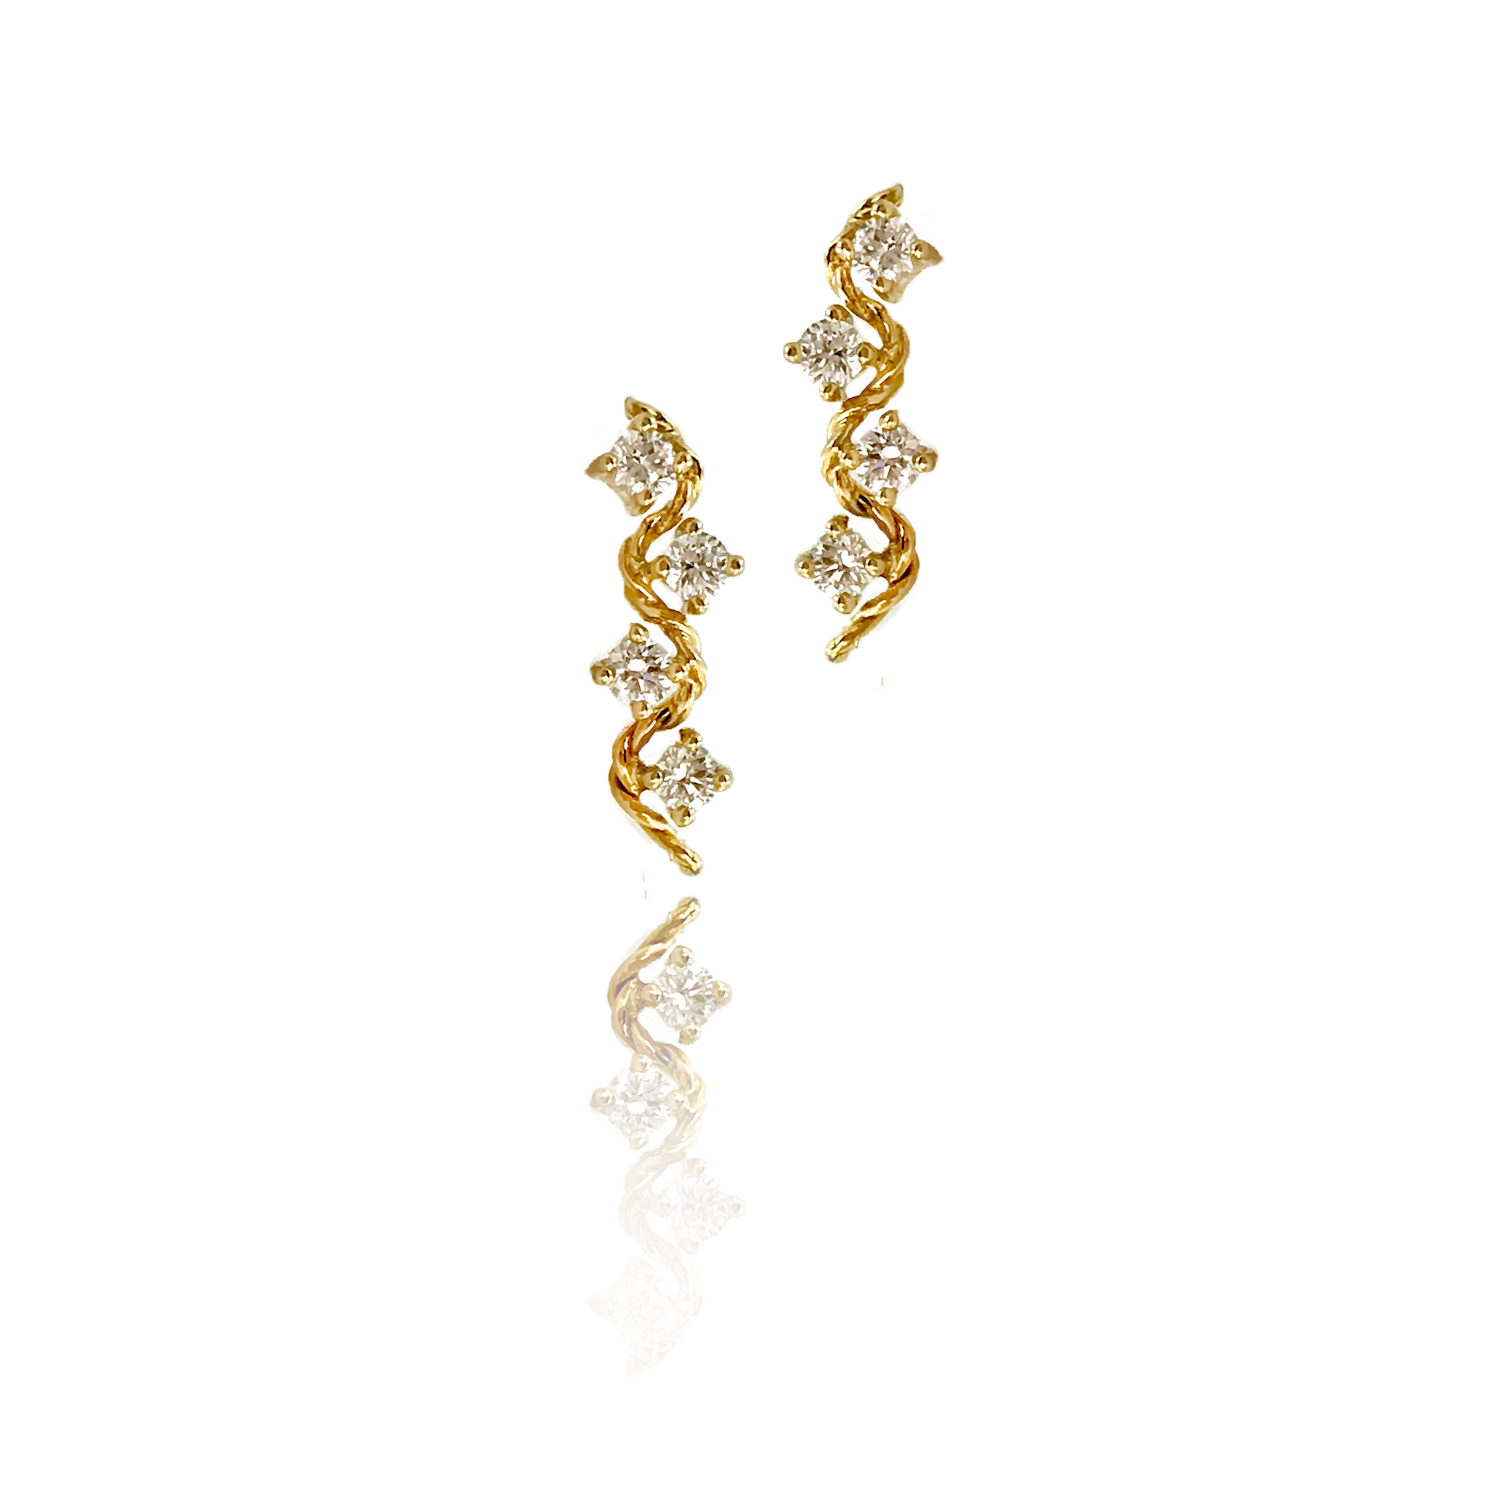 18k Gold Diamond Twist Wave Enlace Stud Earrings combine prong set diamonds with Jewelyrie's signature touch of Pirouette Twist.